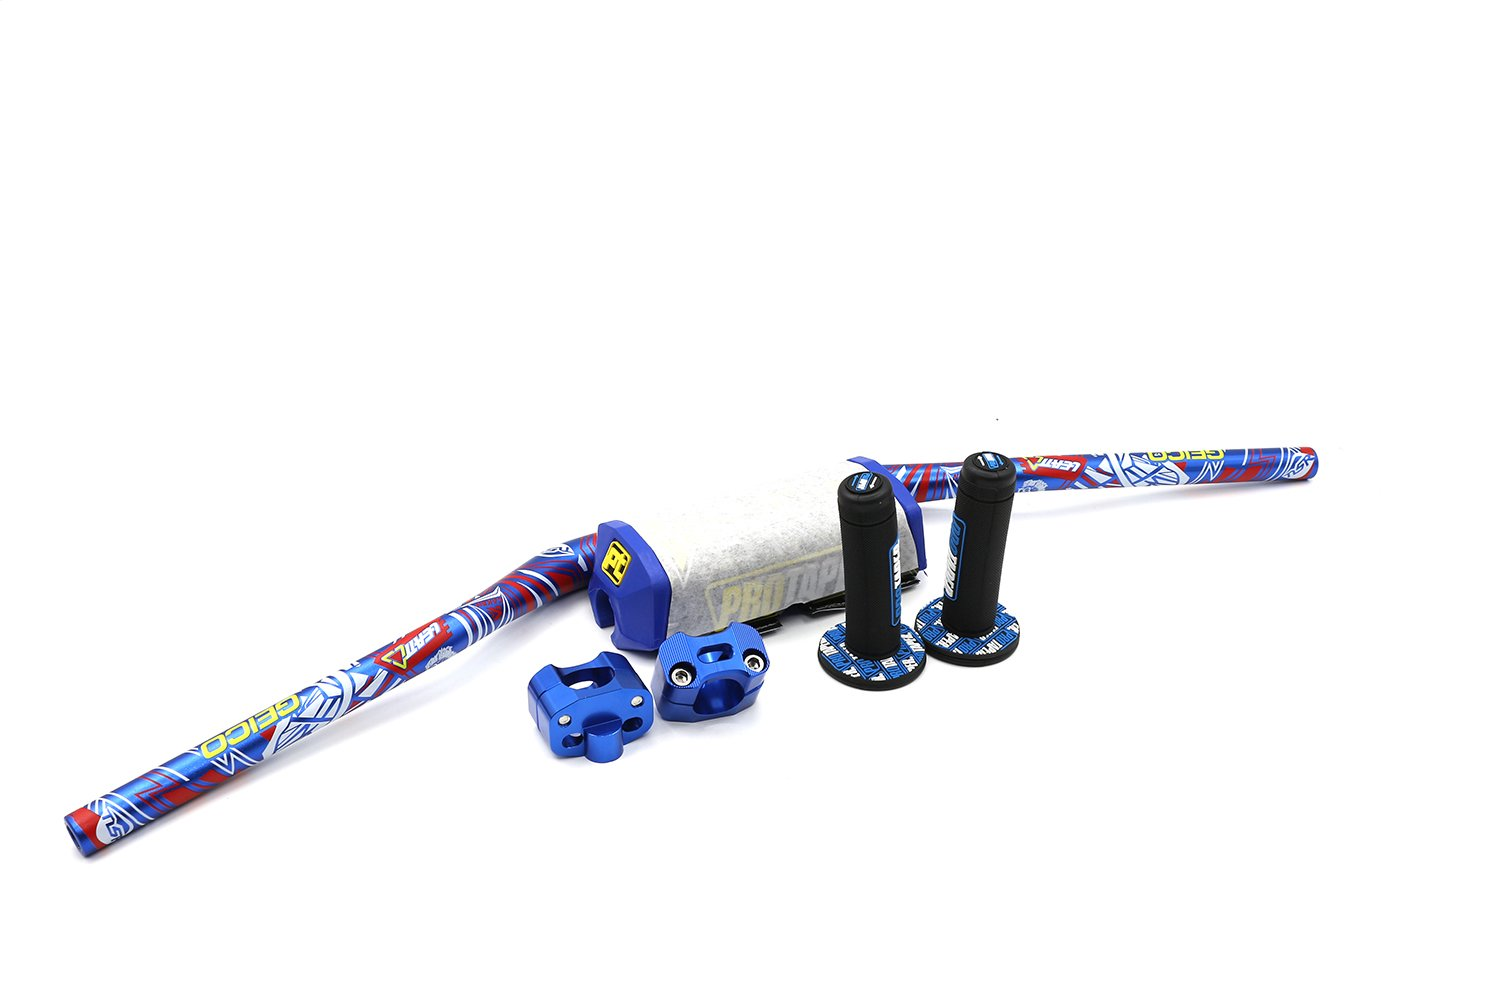 810mm motorcycle Pro Taper Fat Bar 1-1/8'' 28mm Pit Dirt Bike Handlebar Lower bar with handlebar balancer pad blue